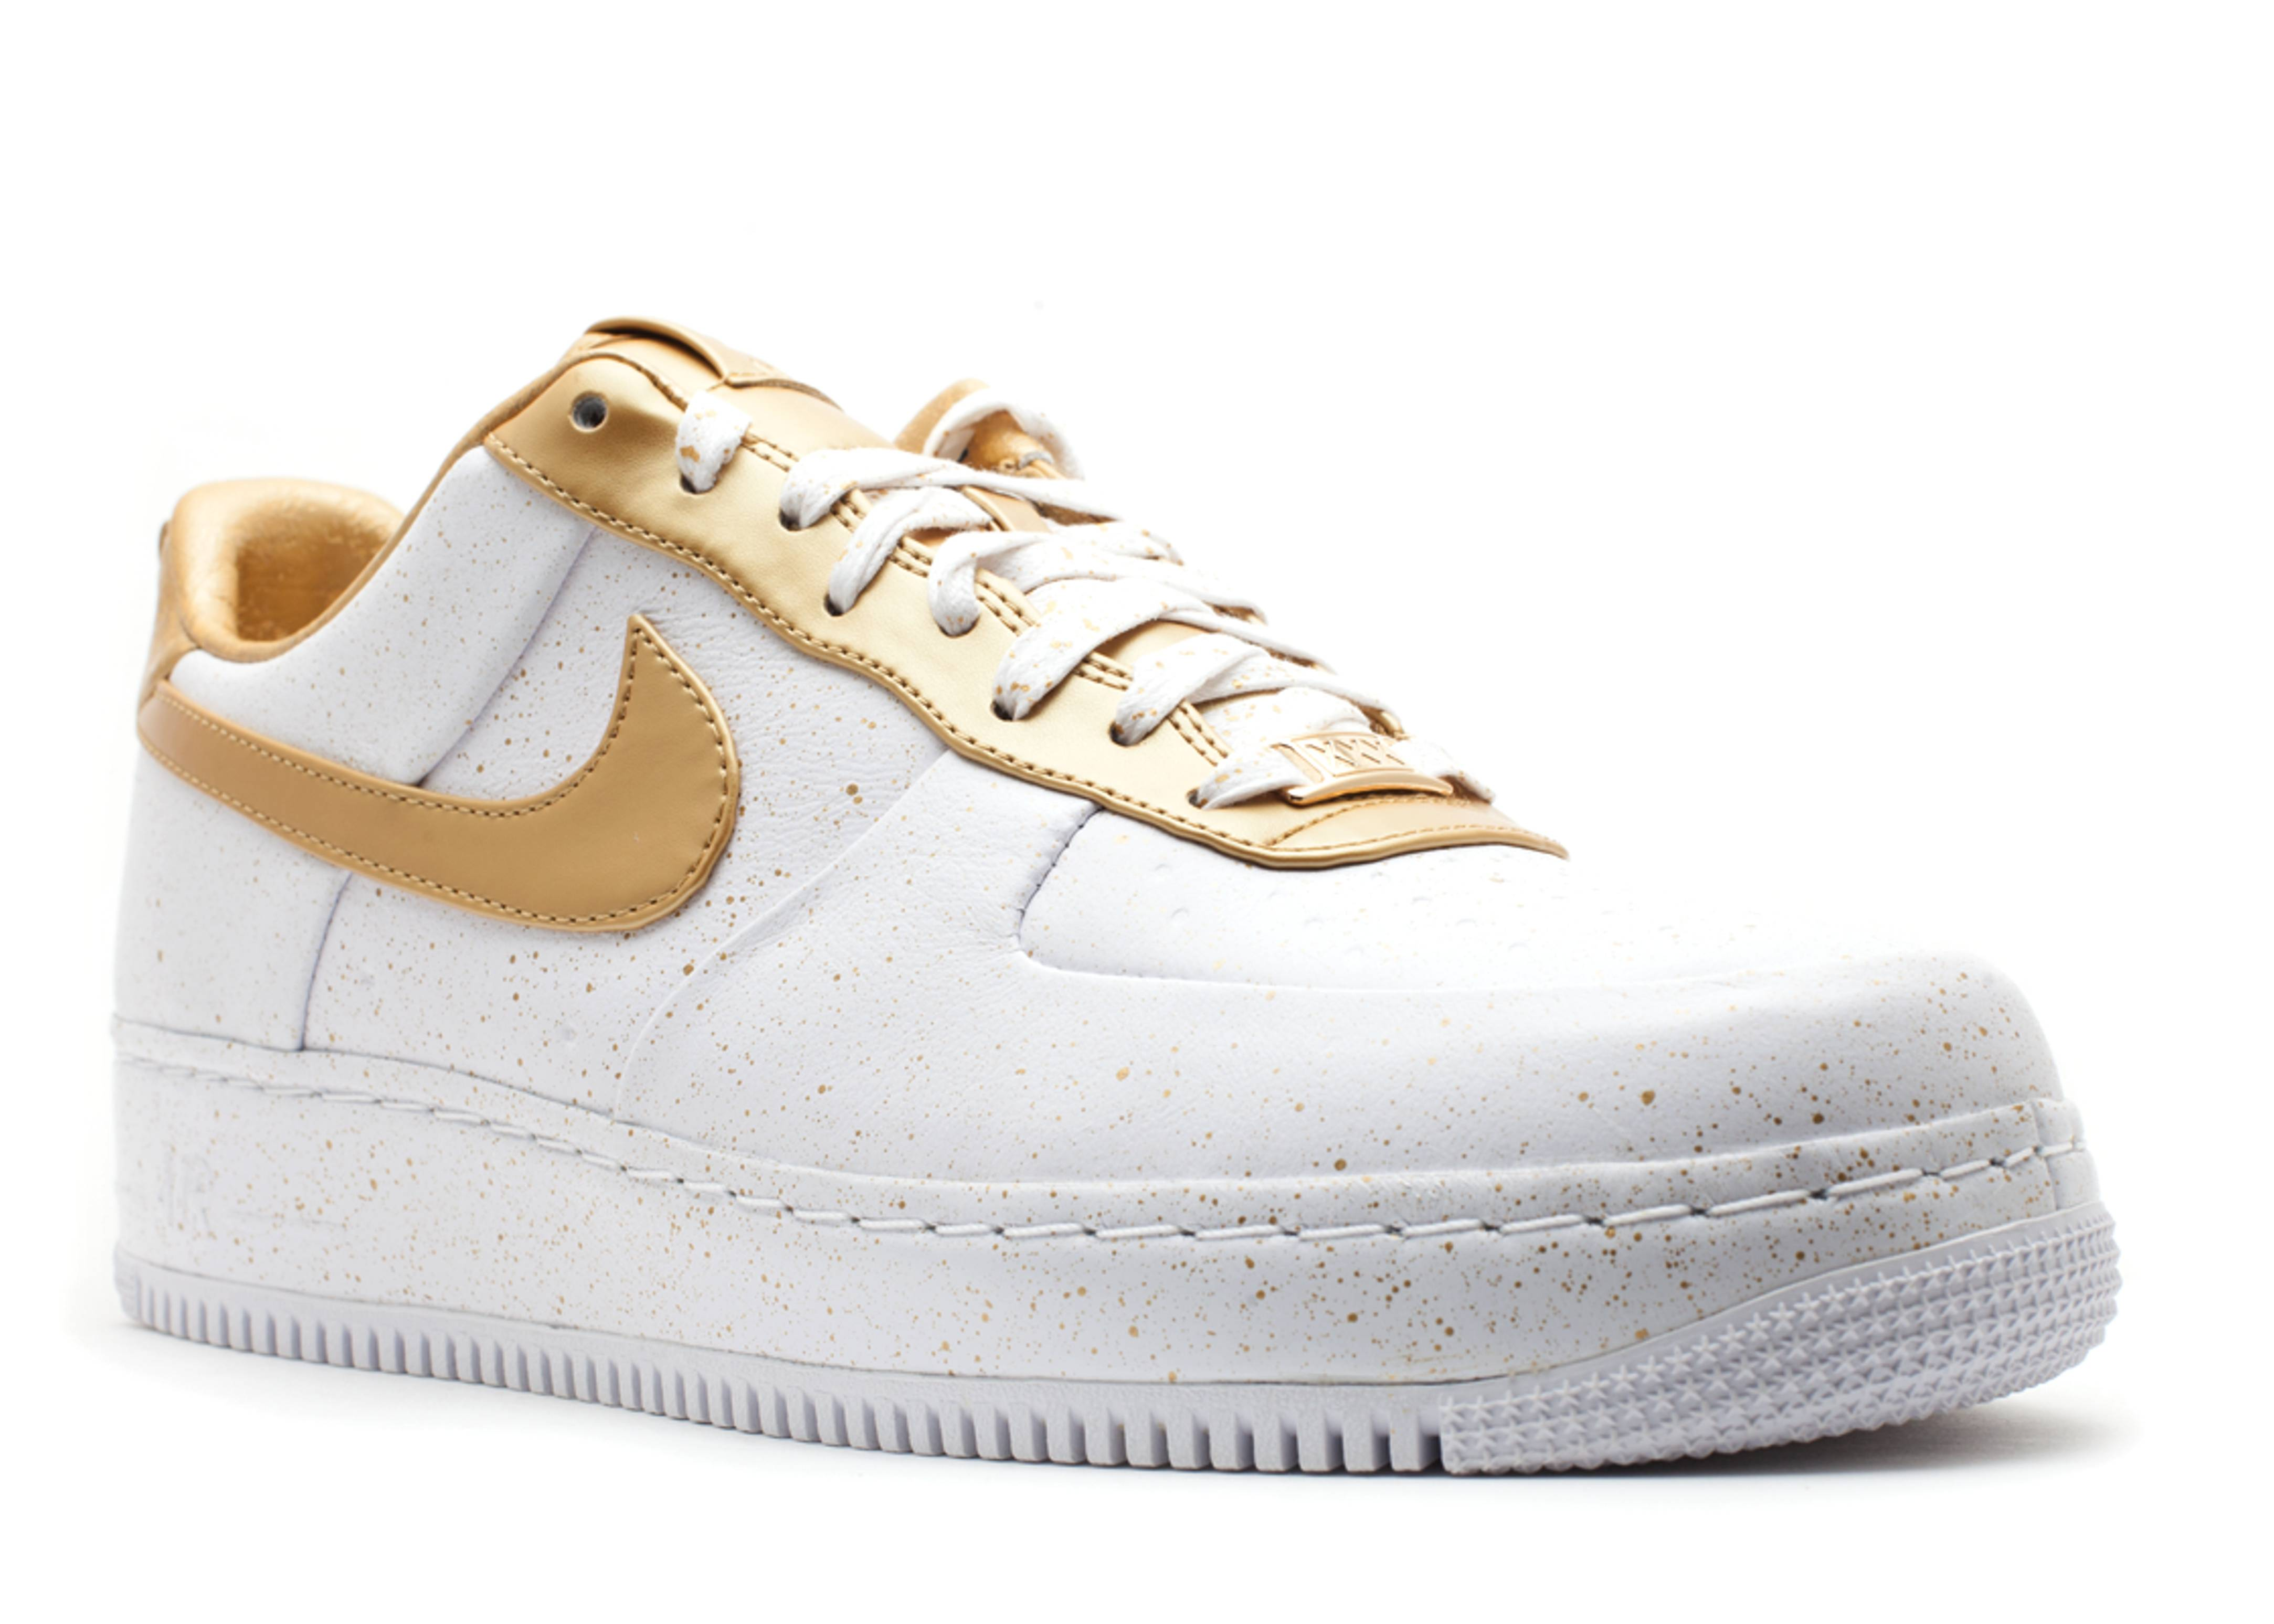 buy popular afb09 4edb0 ... Metallic Gold - Cool Shoes Online nike. air force 1 low supreme io tz  ...